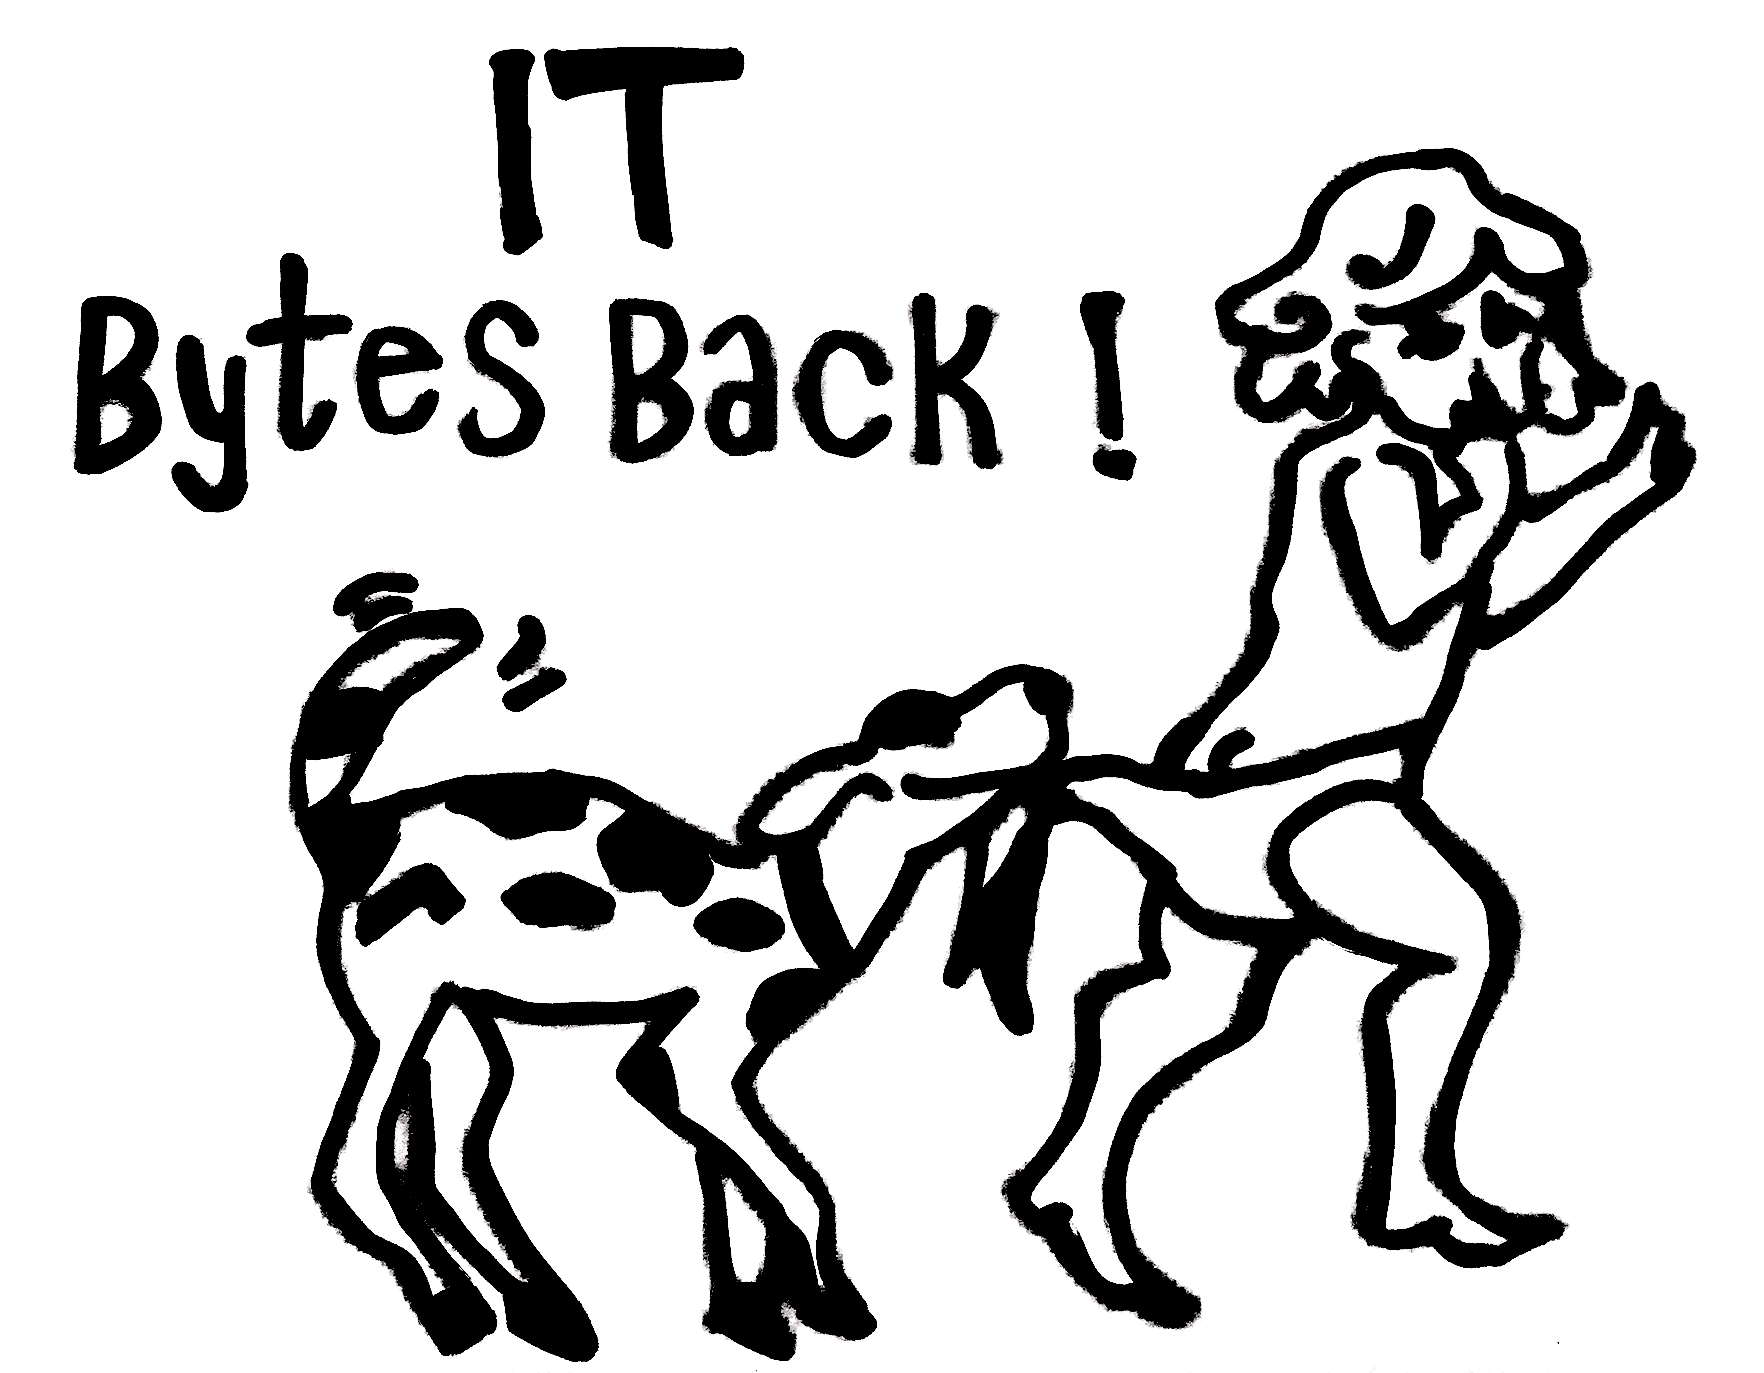 IT BYTES BACK! says: Not at our expense, please!